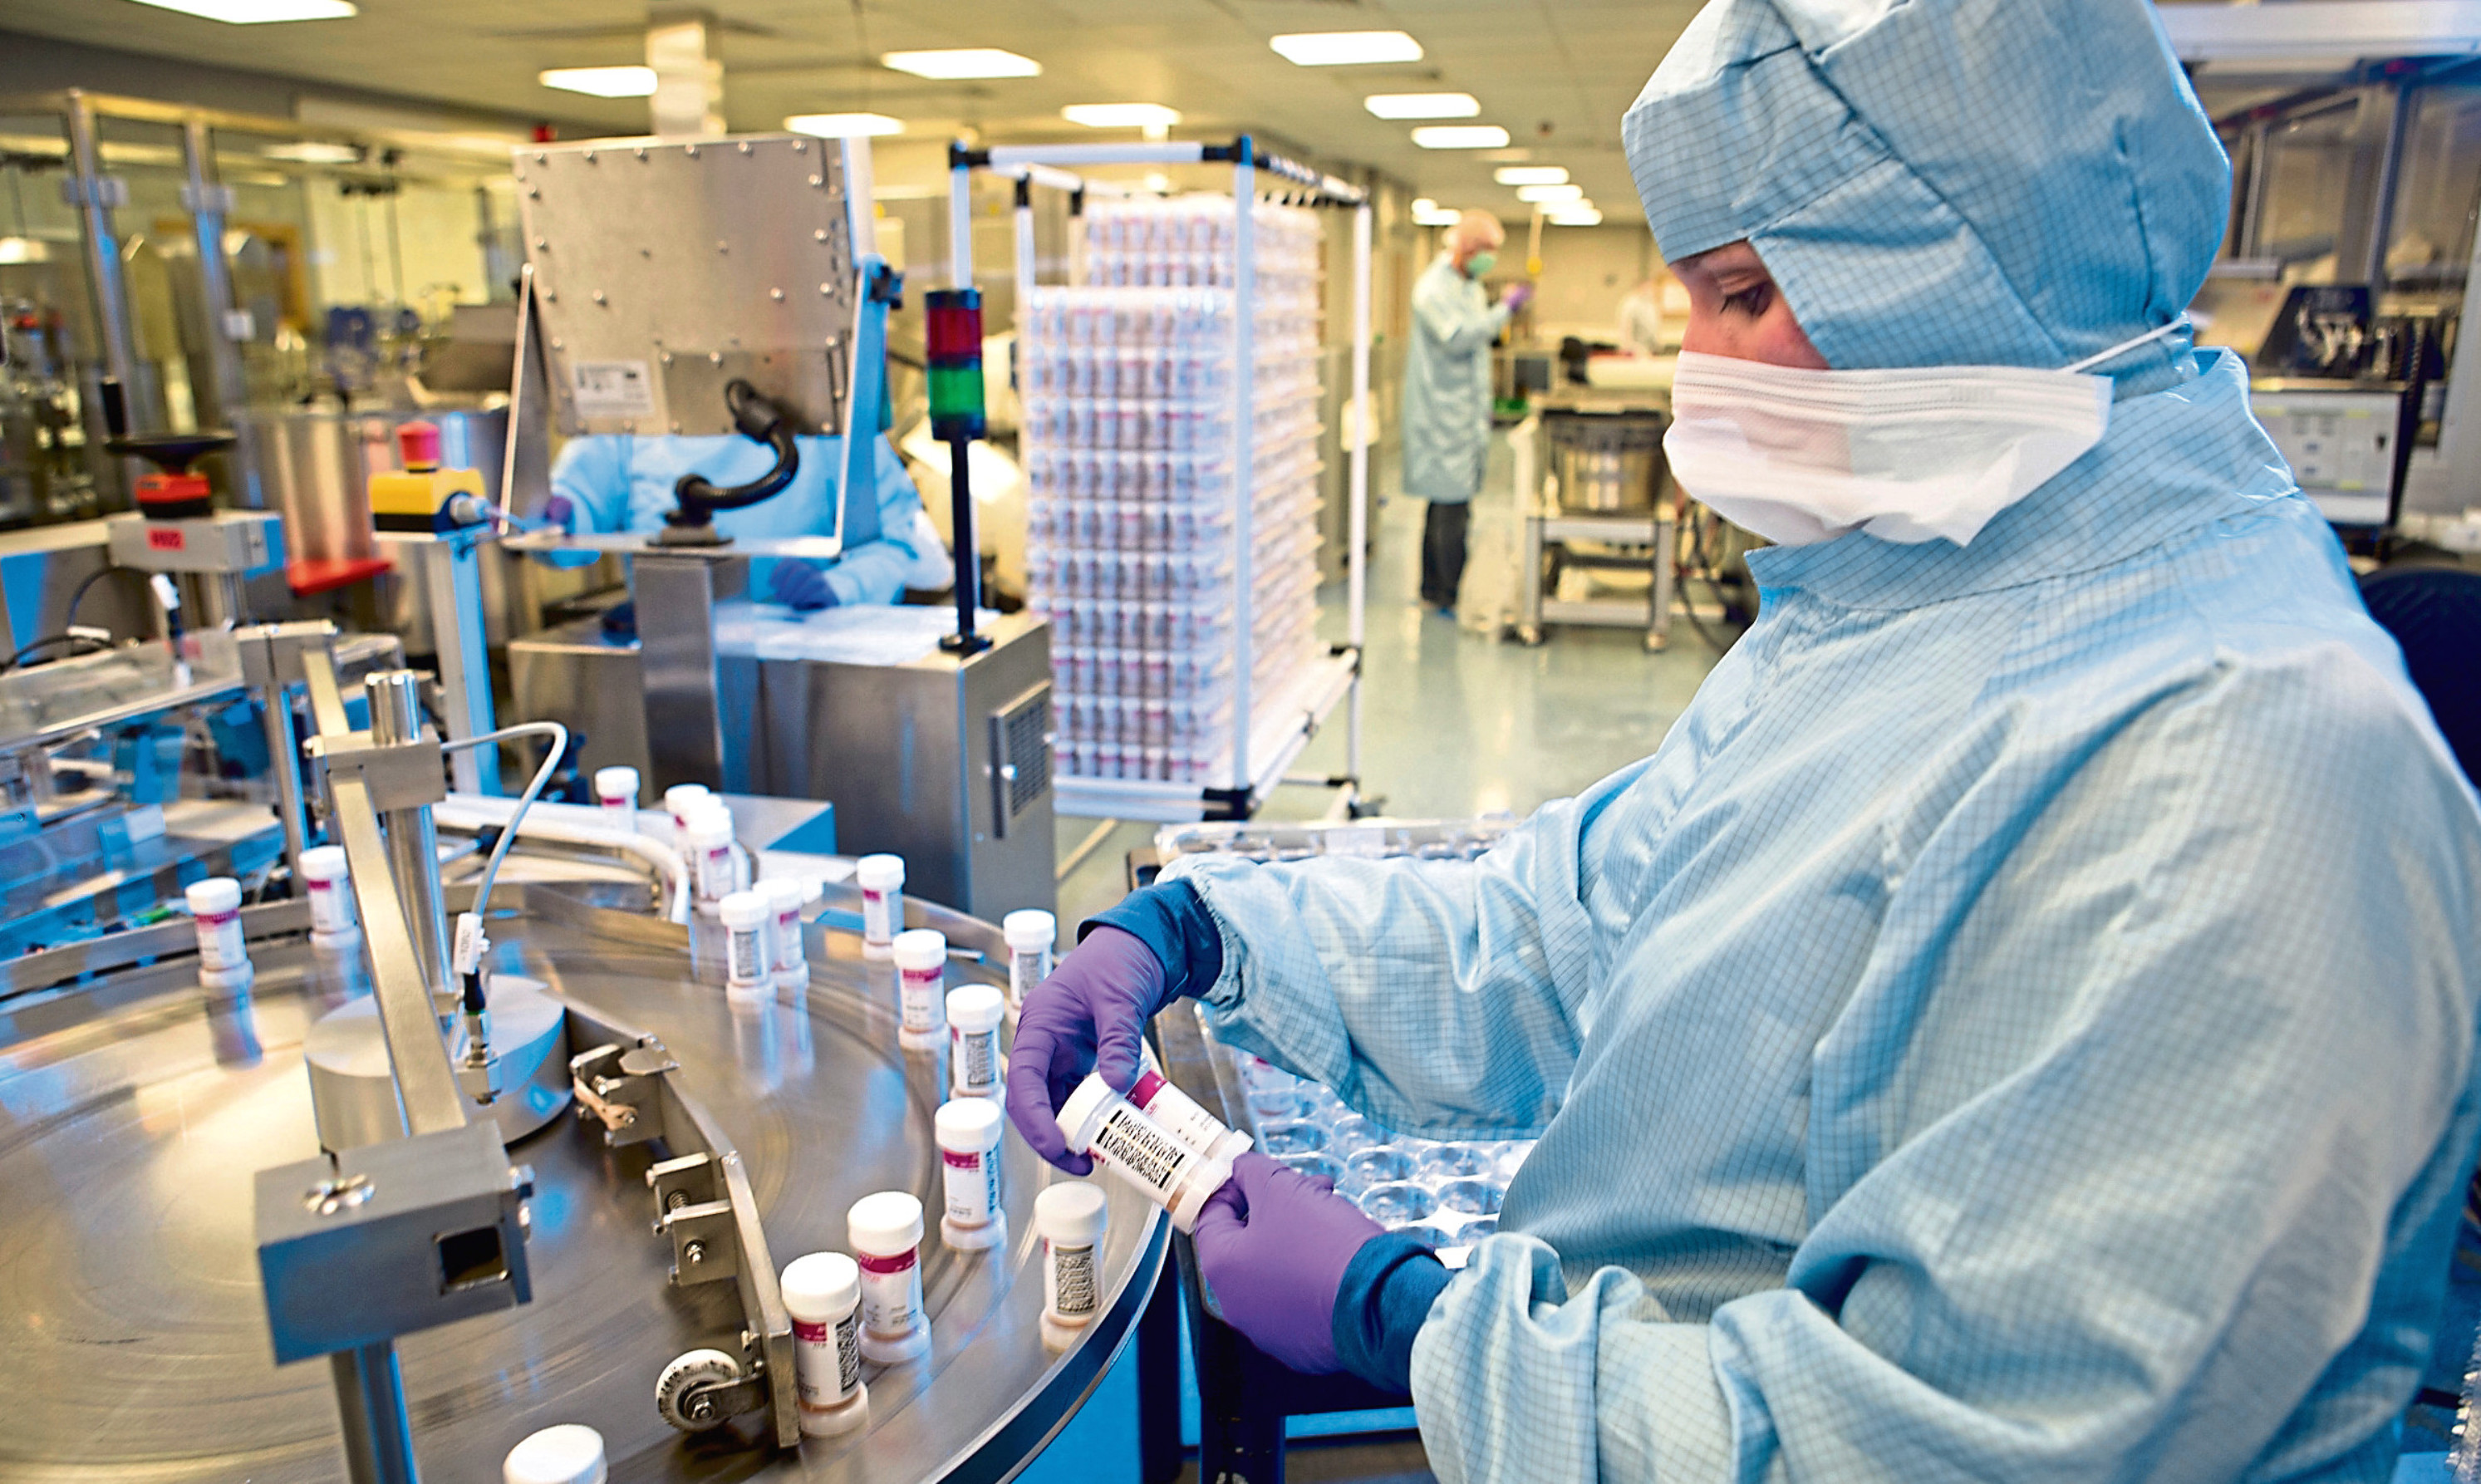 Entrust specialises in recruitment in the life sciences sector.